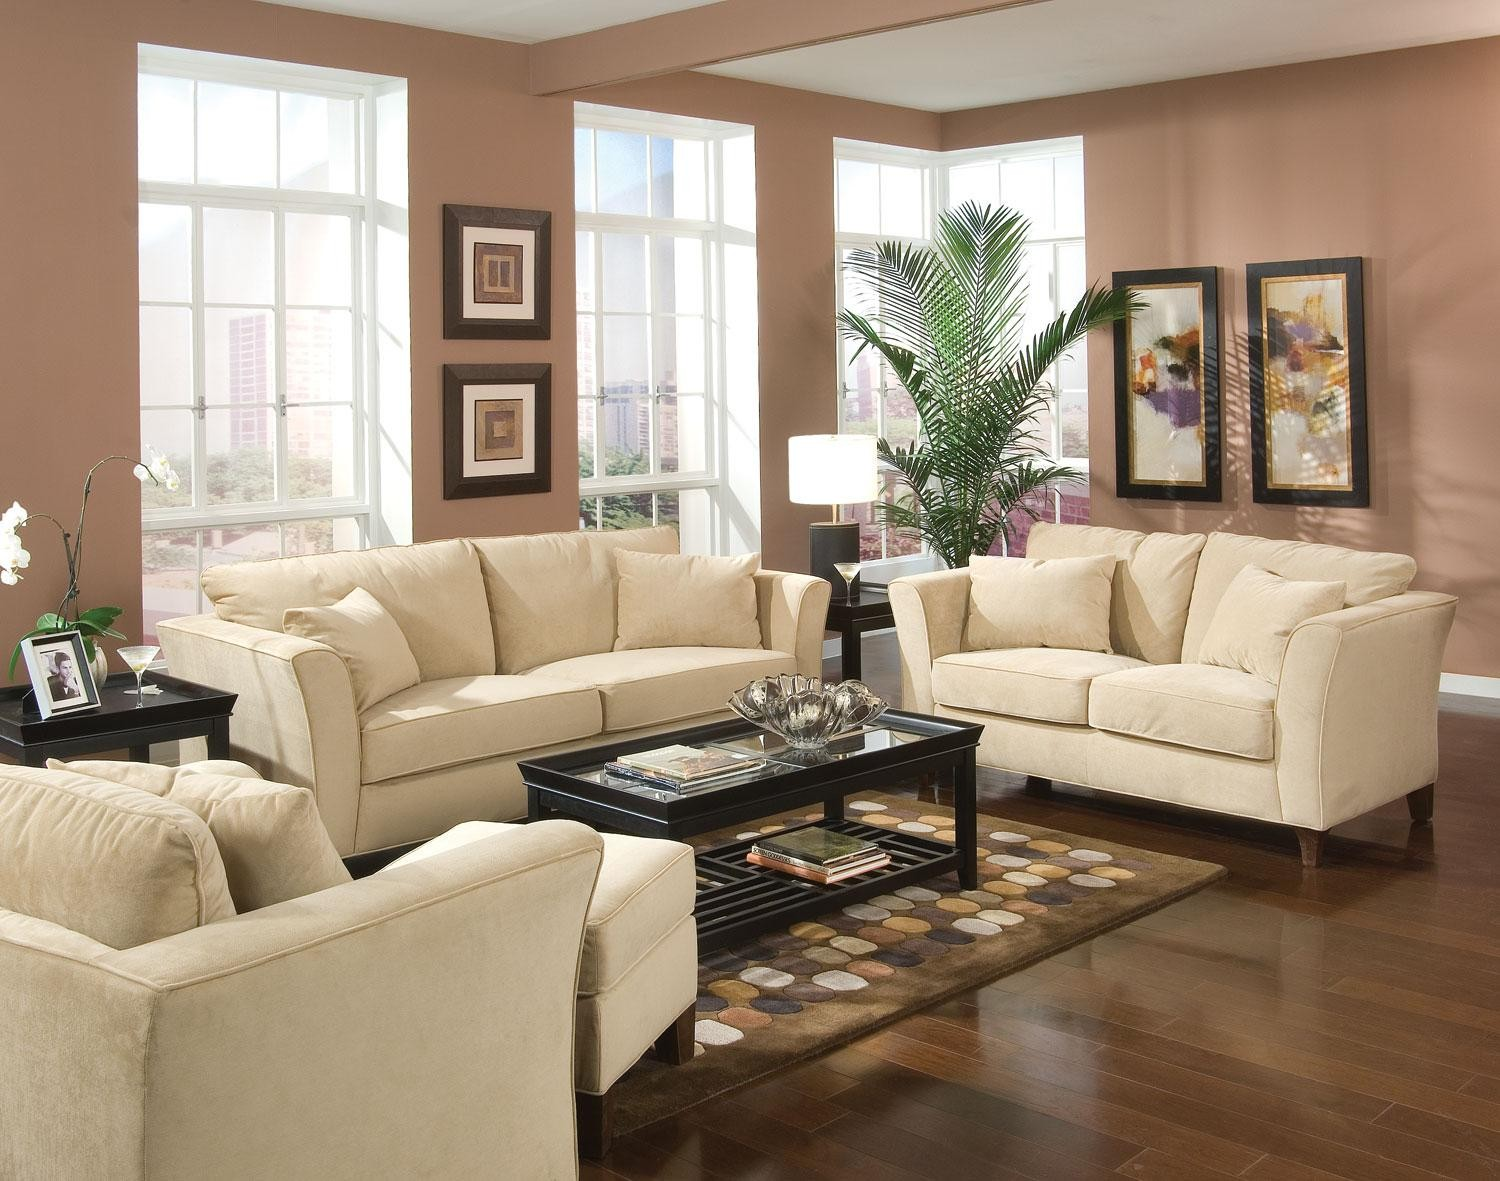 Beautiful Park Place Cream Living Room Collection From Coaster Furniture · Coaster  Furniture · 419272 Part 2